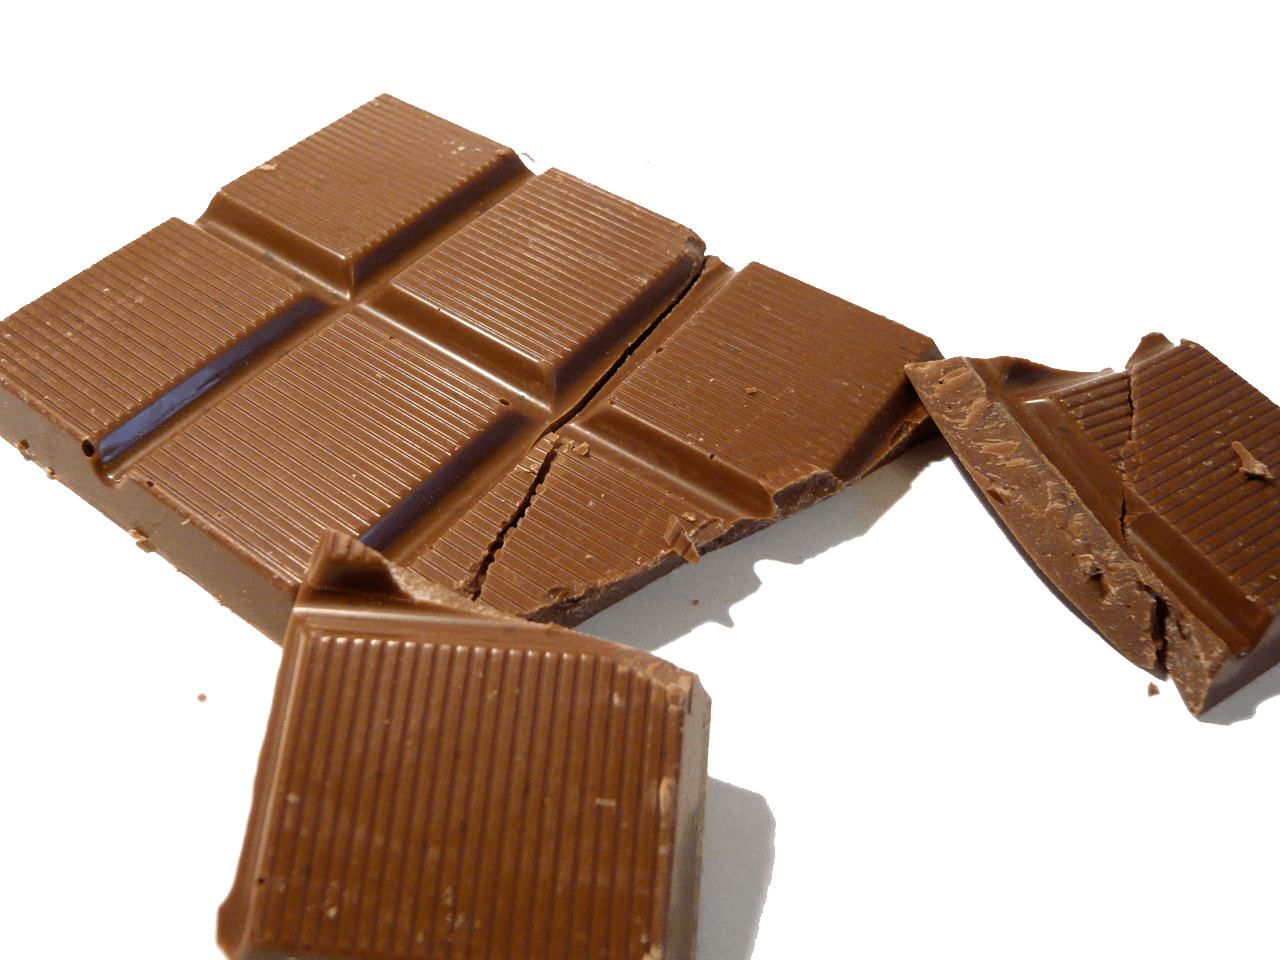 Chocolate Bar Png Image PNG Image